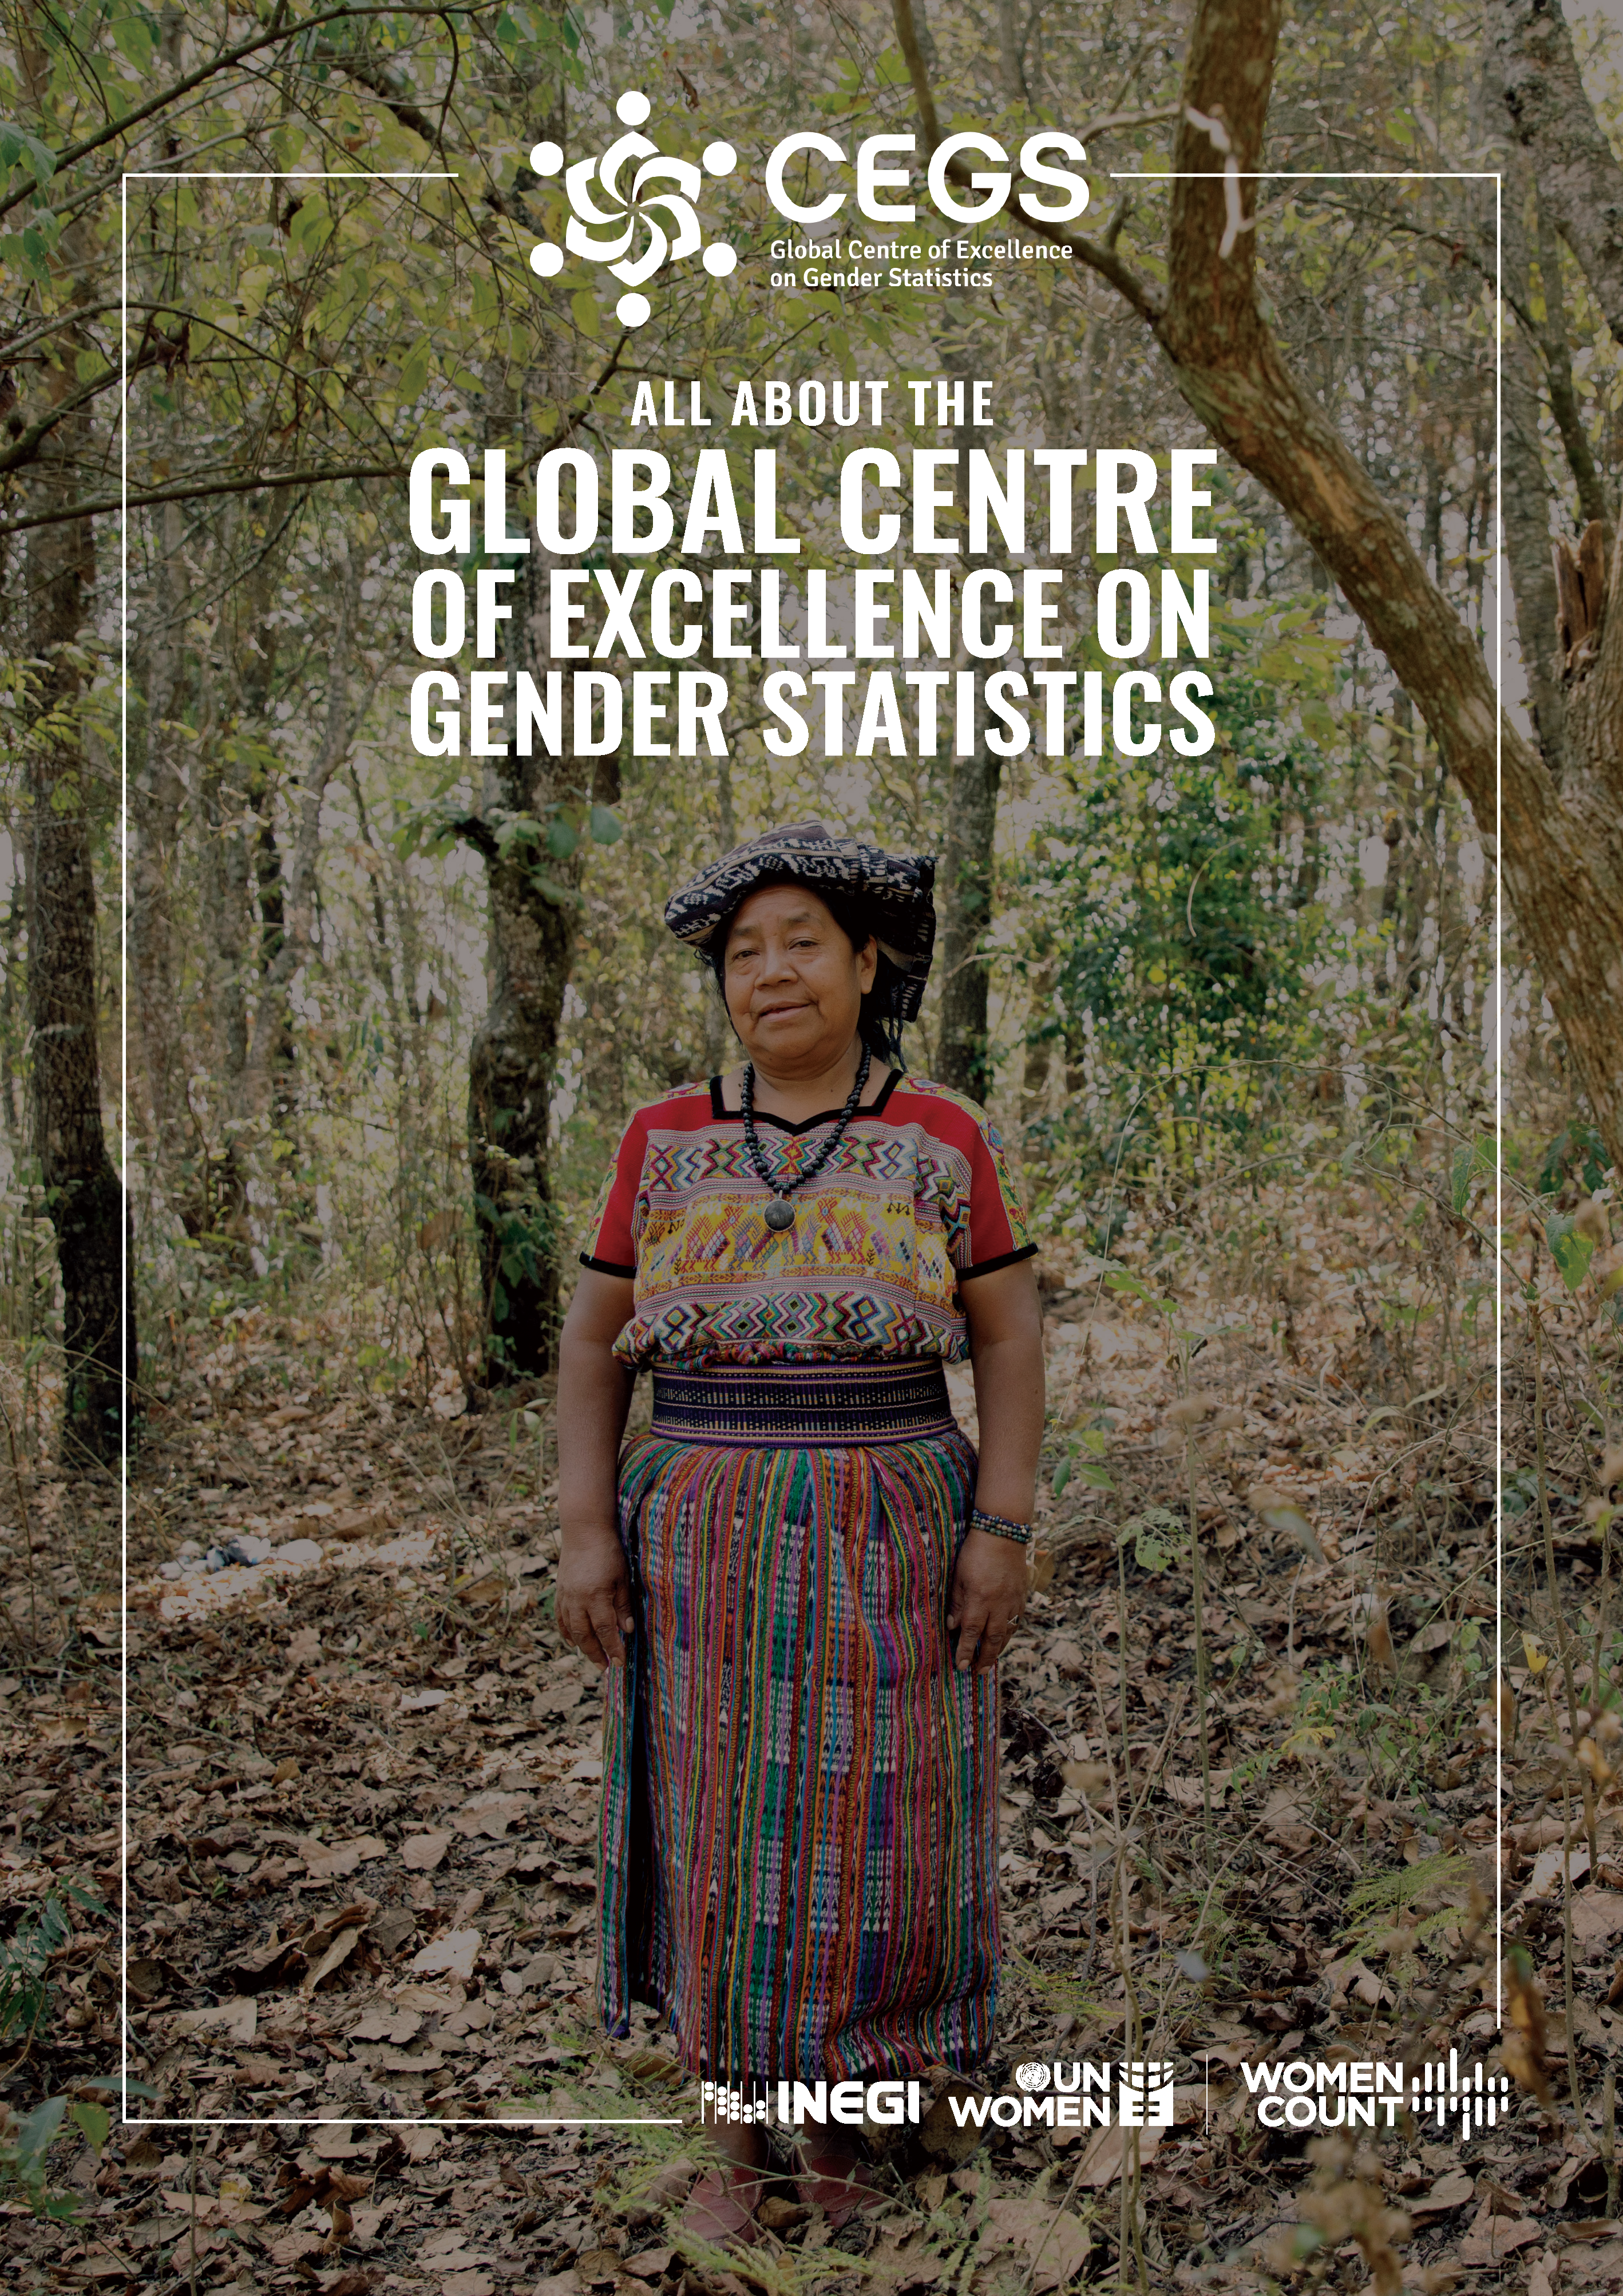 Factsheet: The Global Centre of Excellence on Gender Statistics